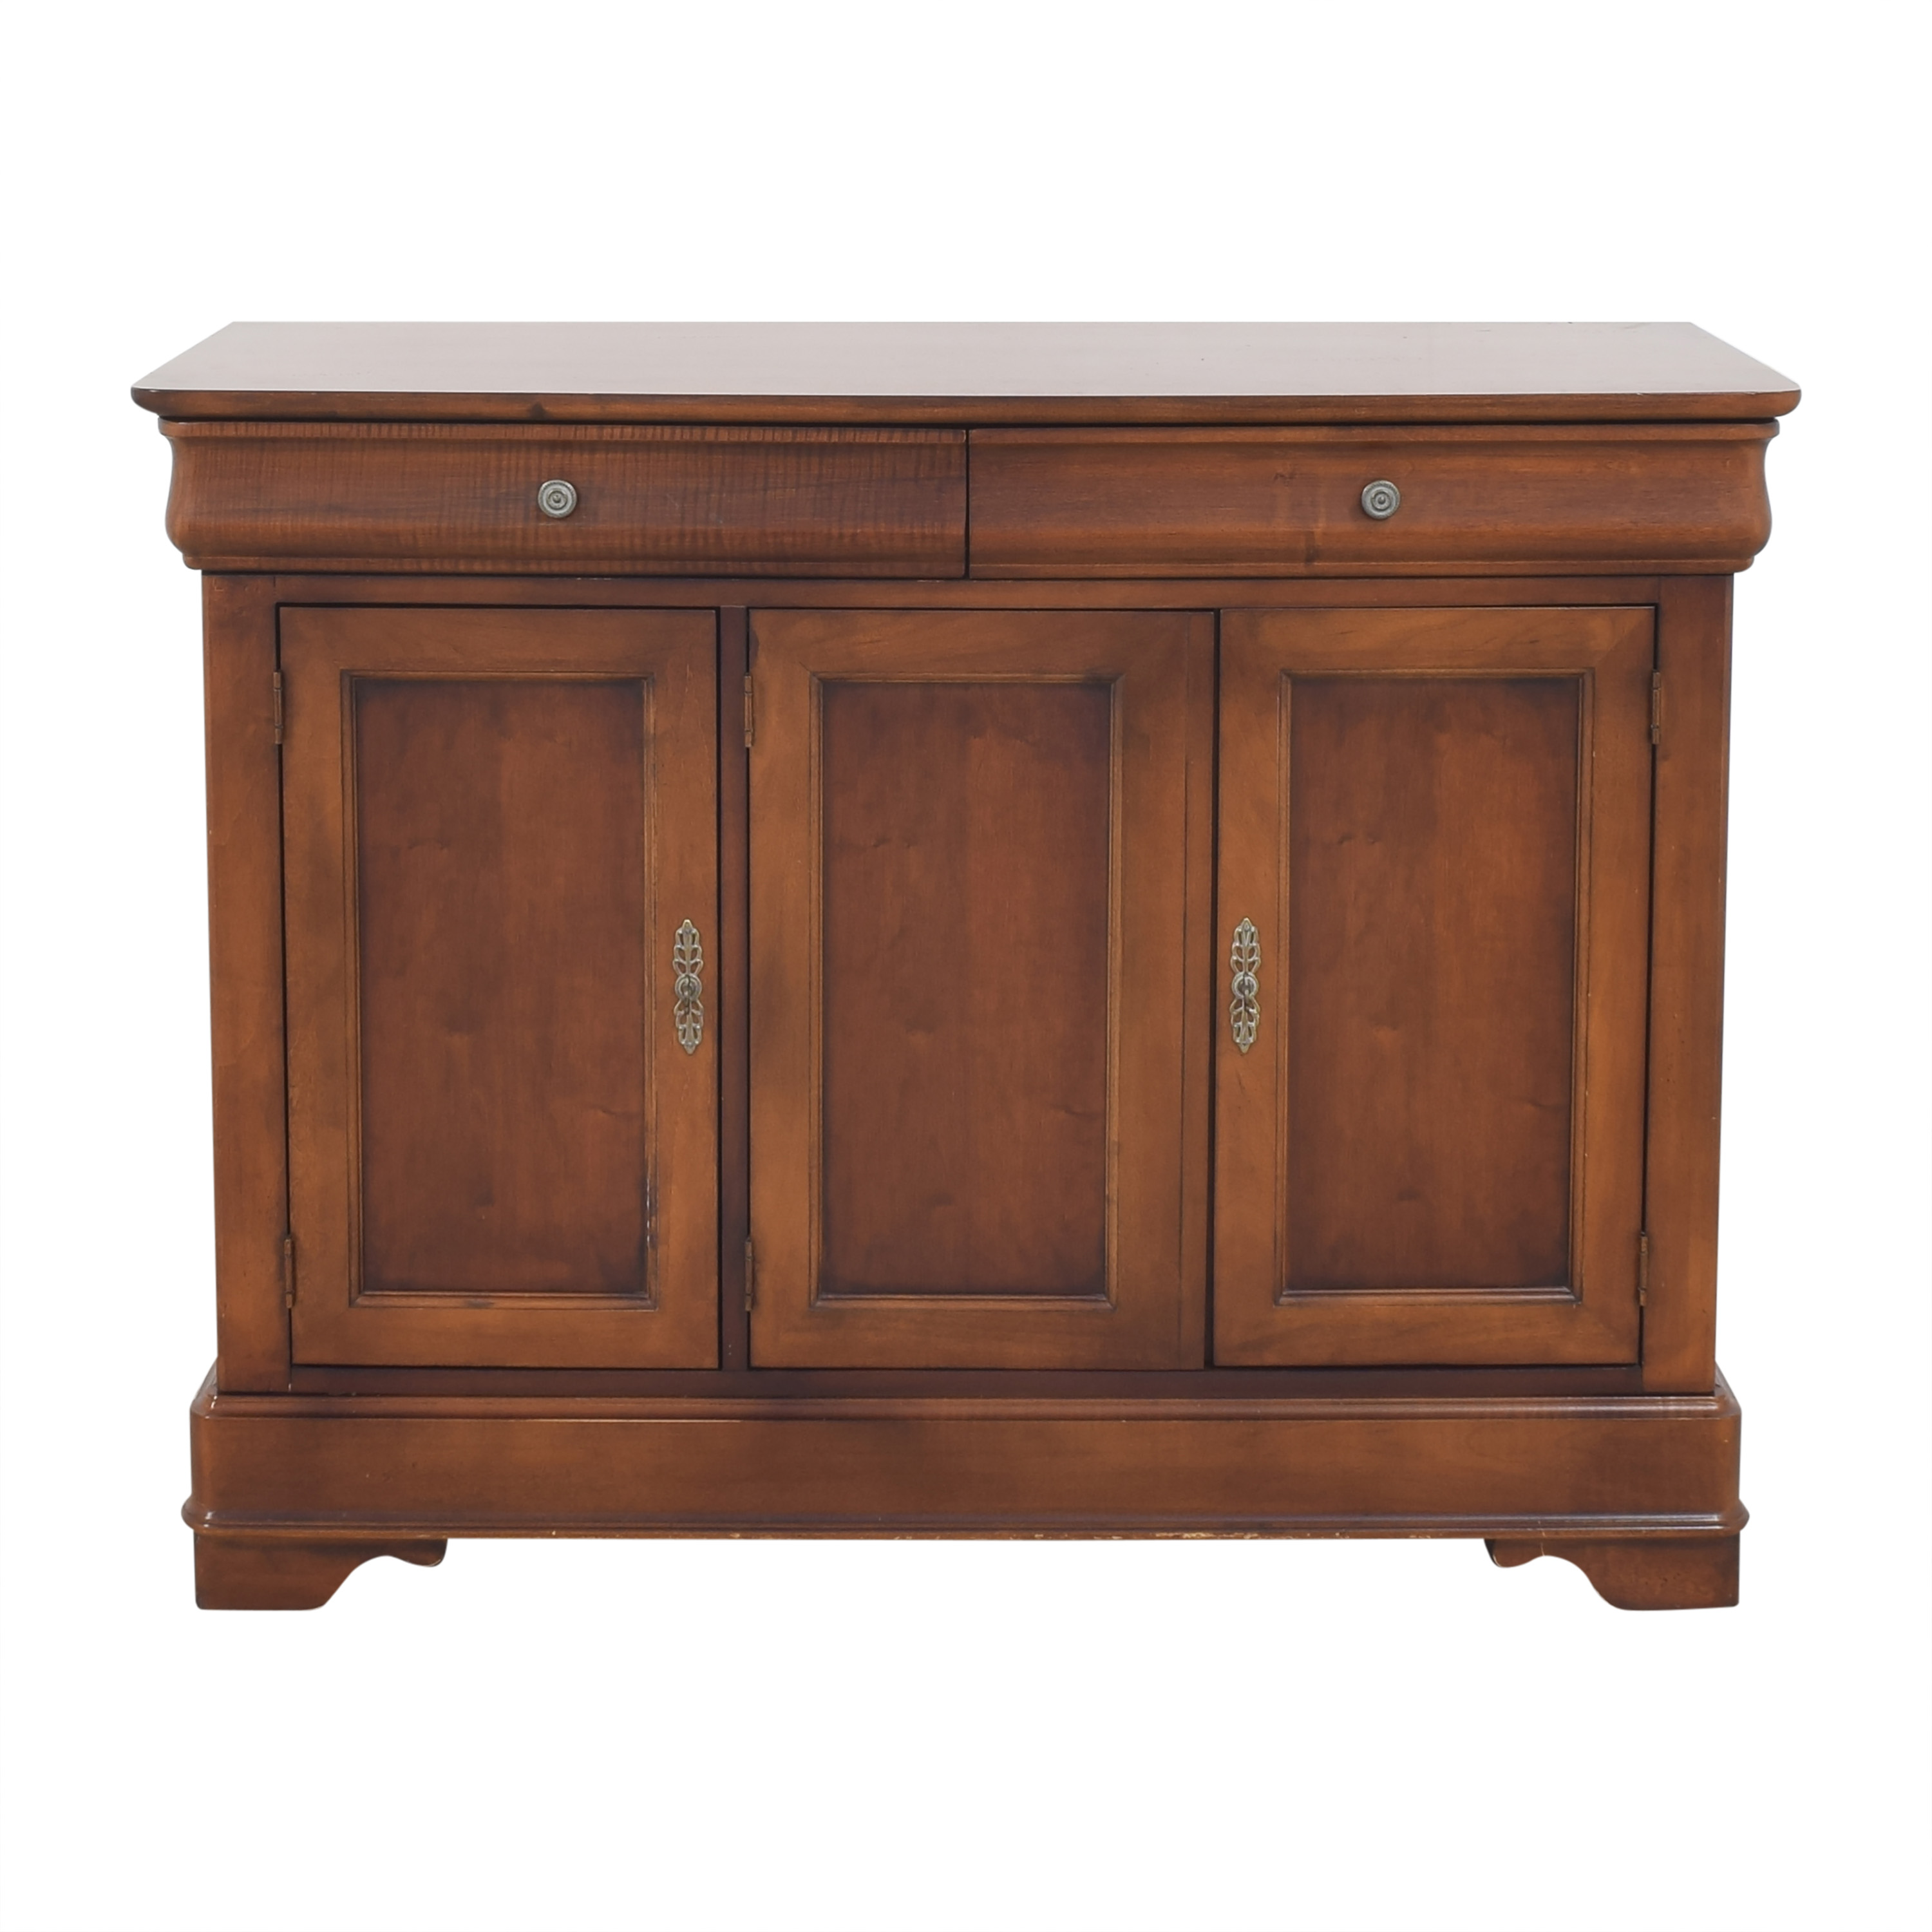 Drexel Drexel Three Door Sideboard ct